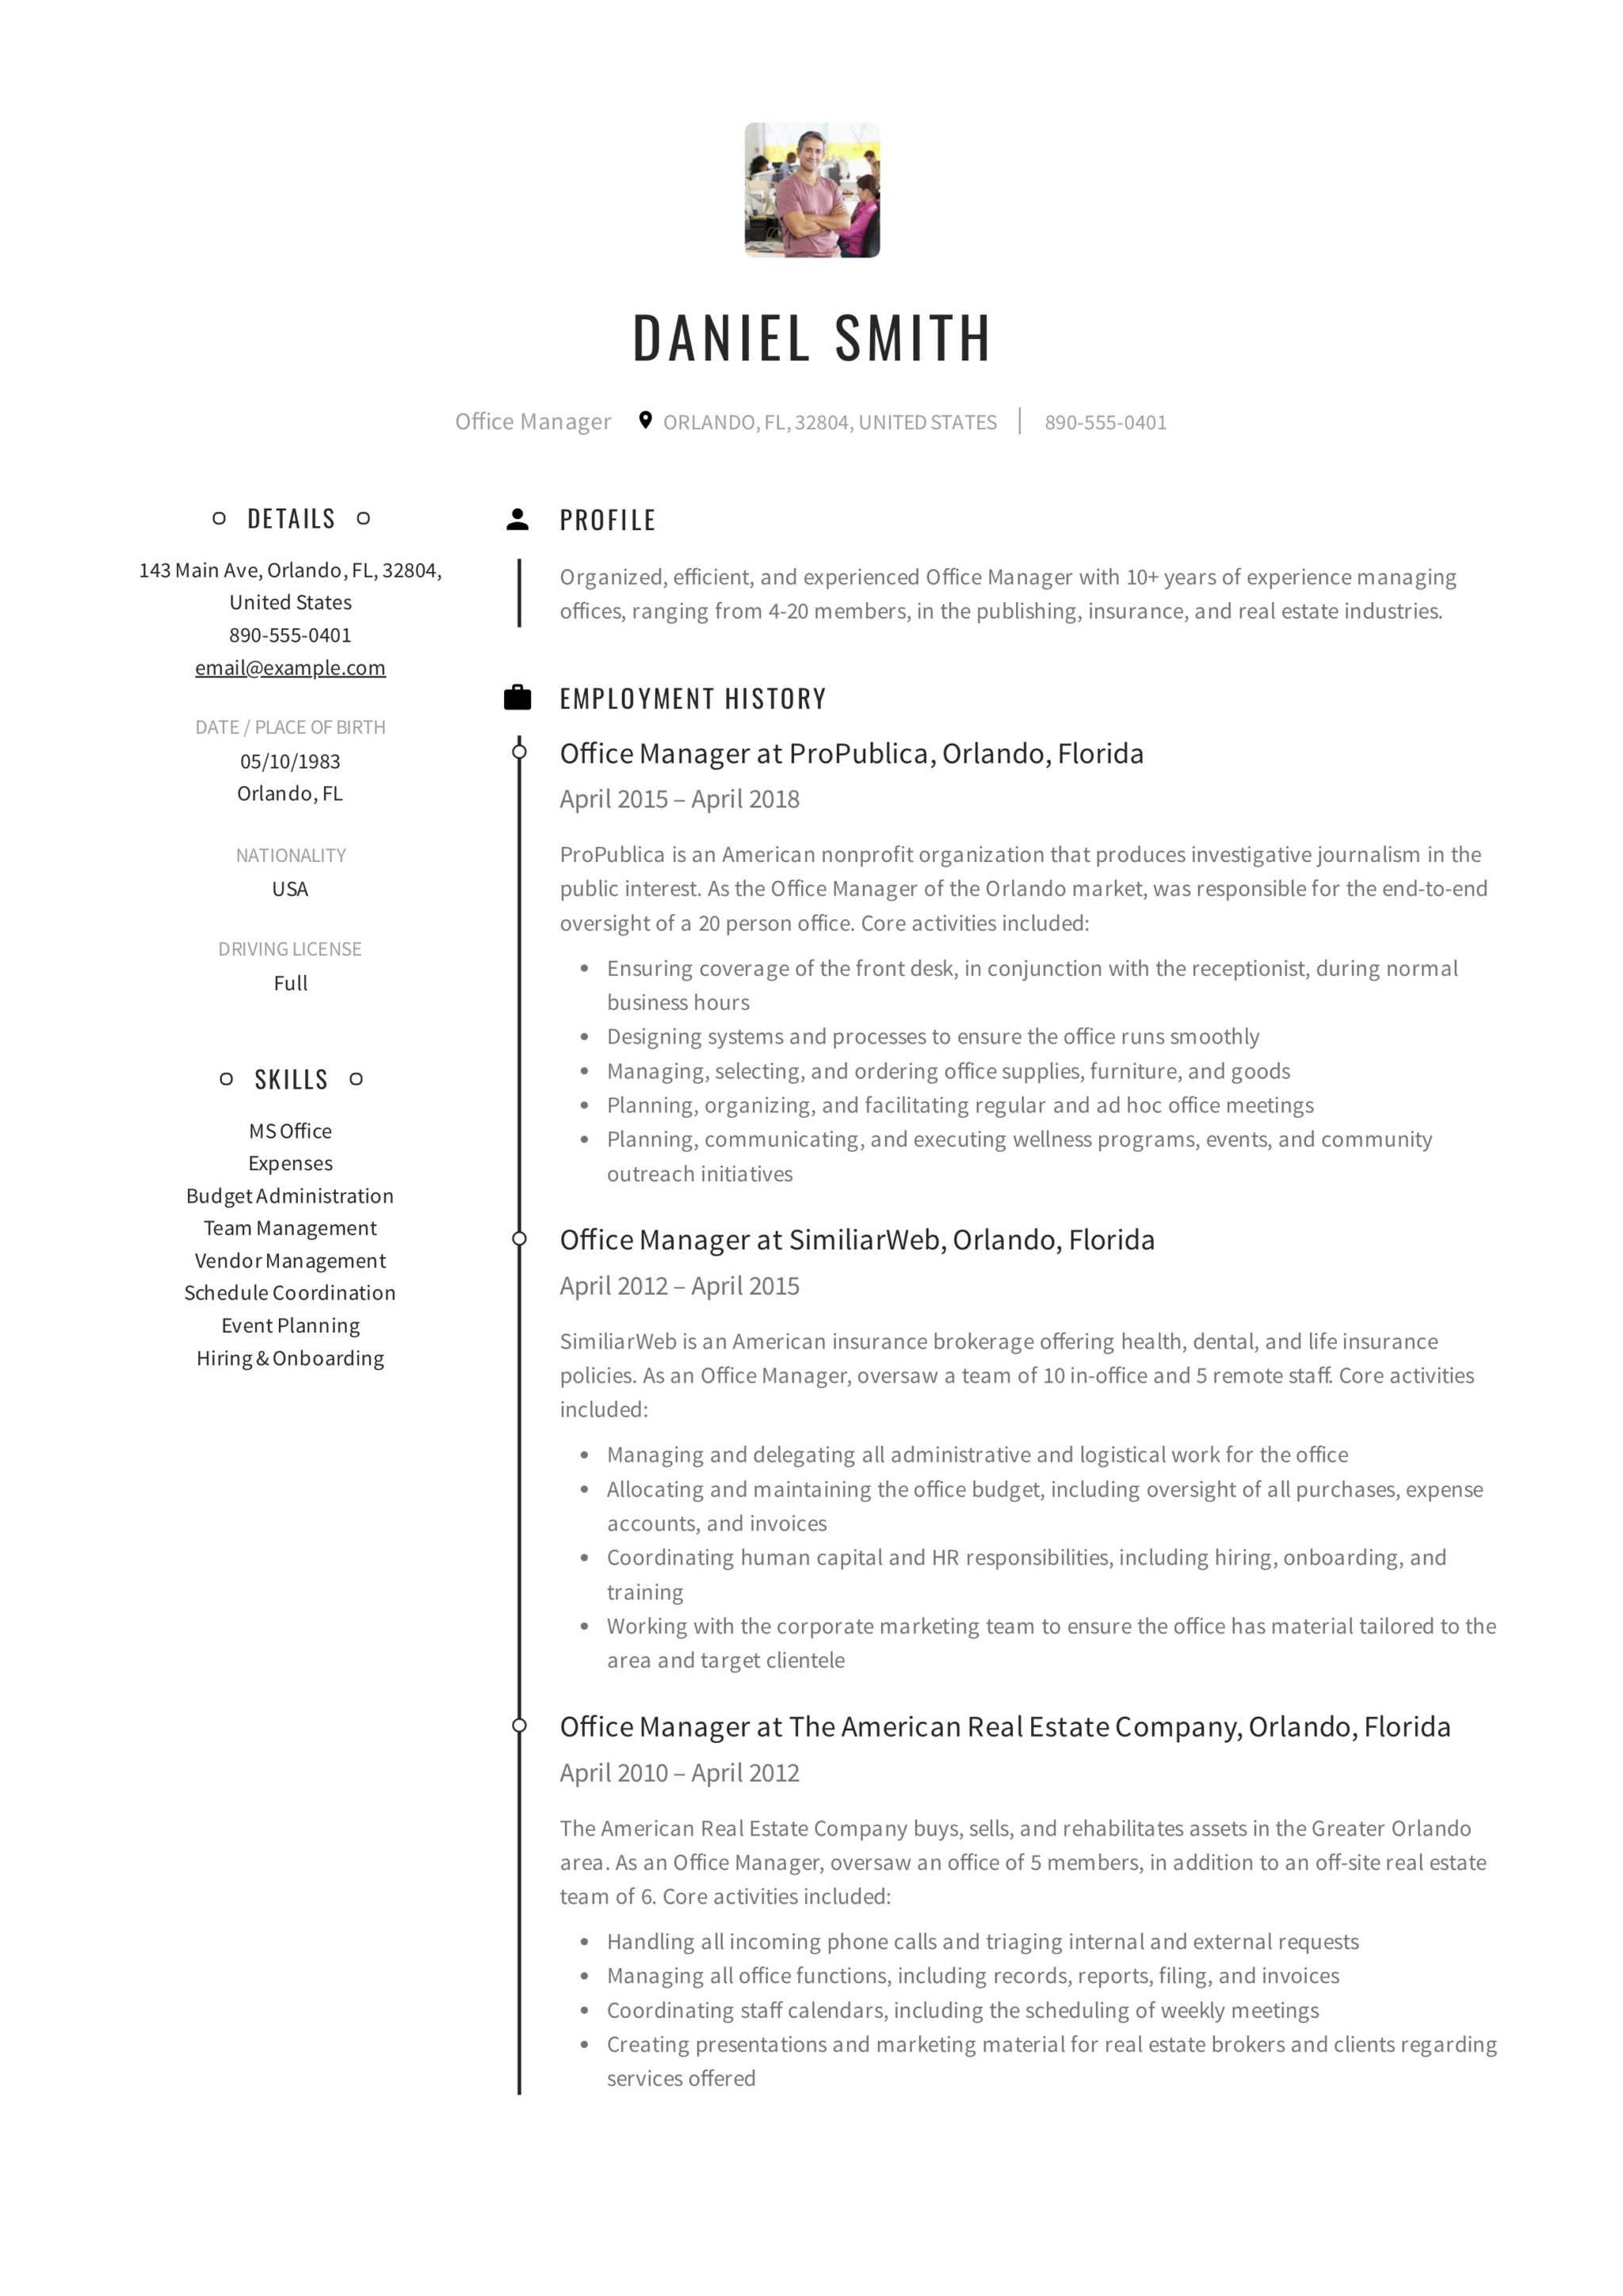 Manager Resume Format Guide Office Manager Resume 12 Samples Pdf 2019